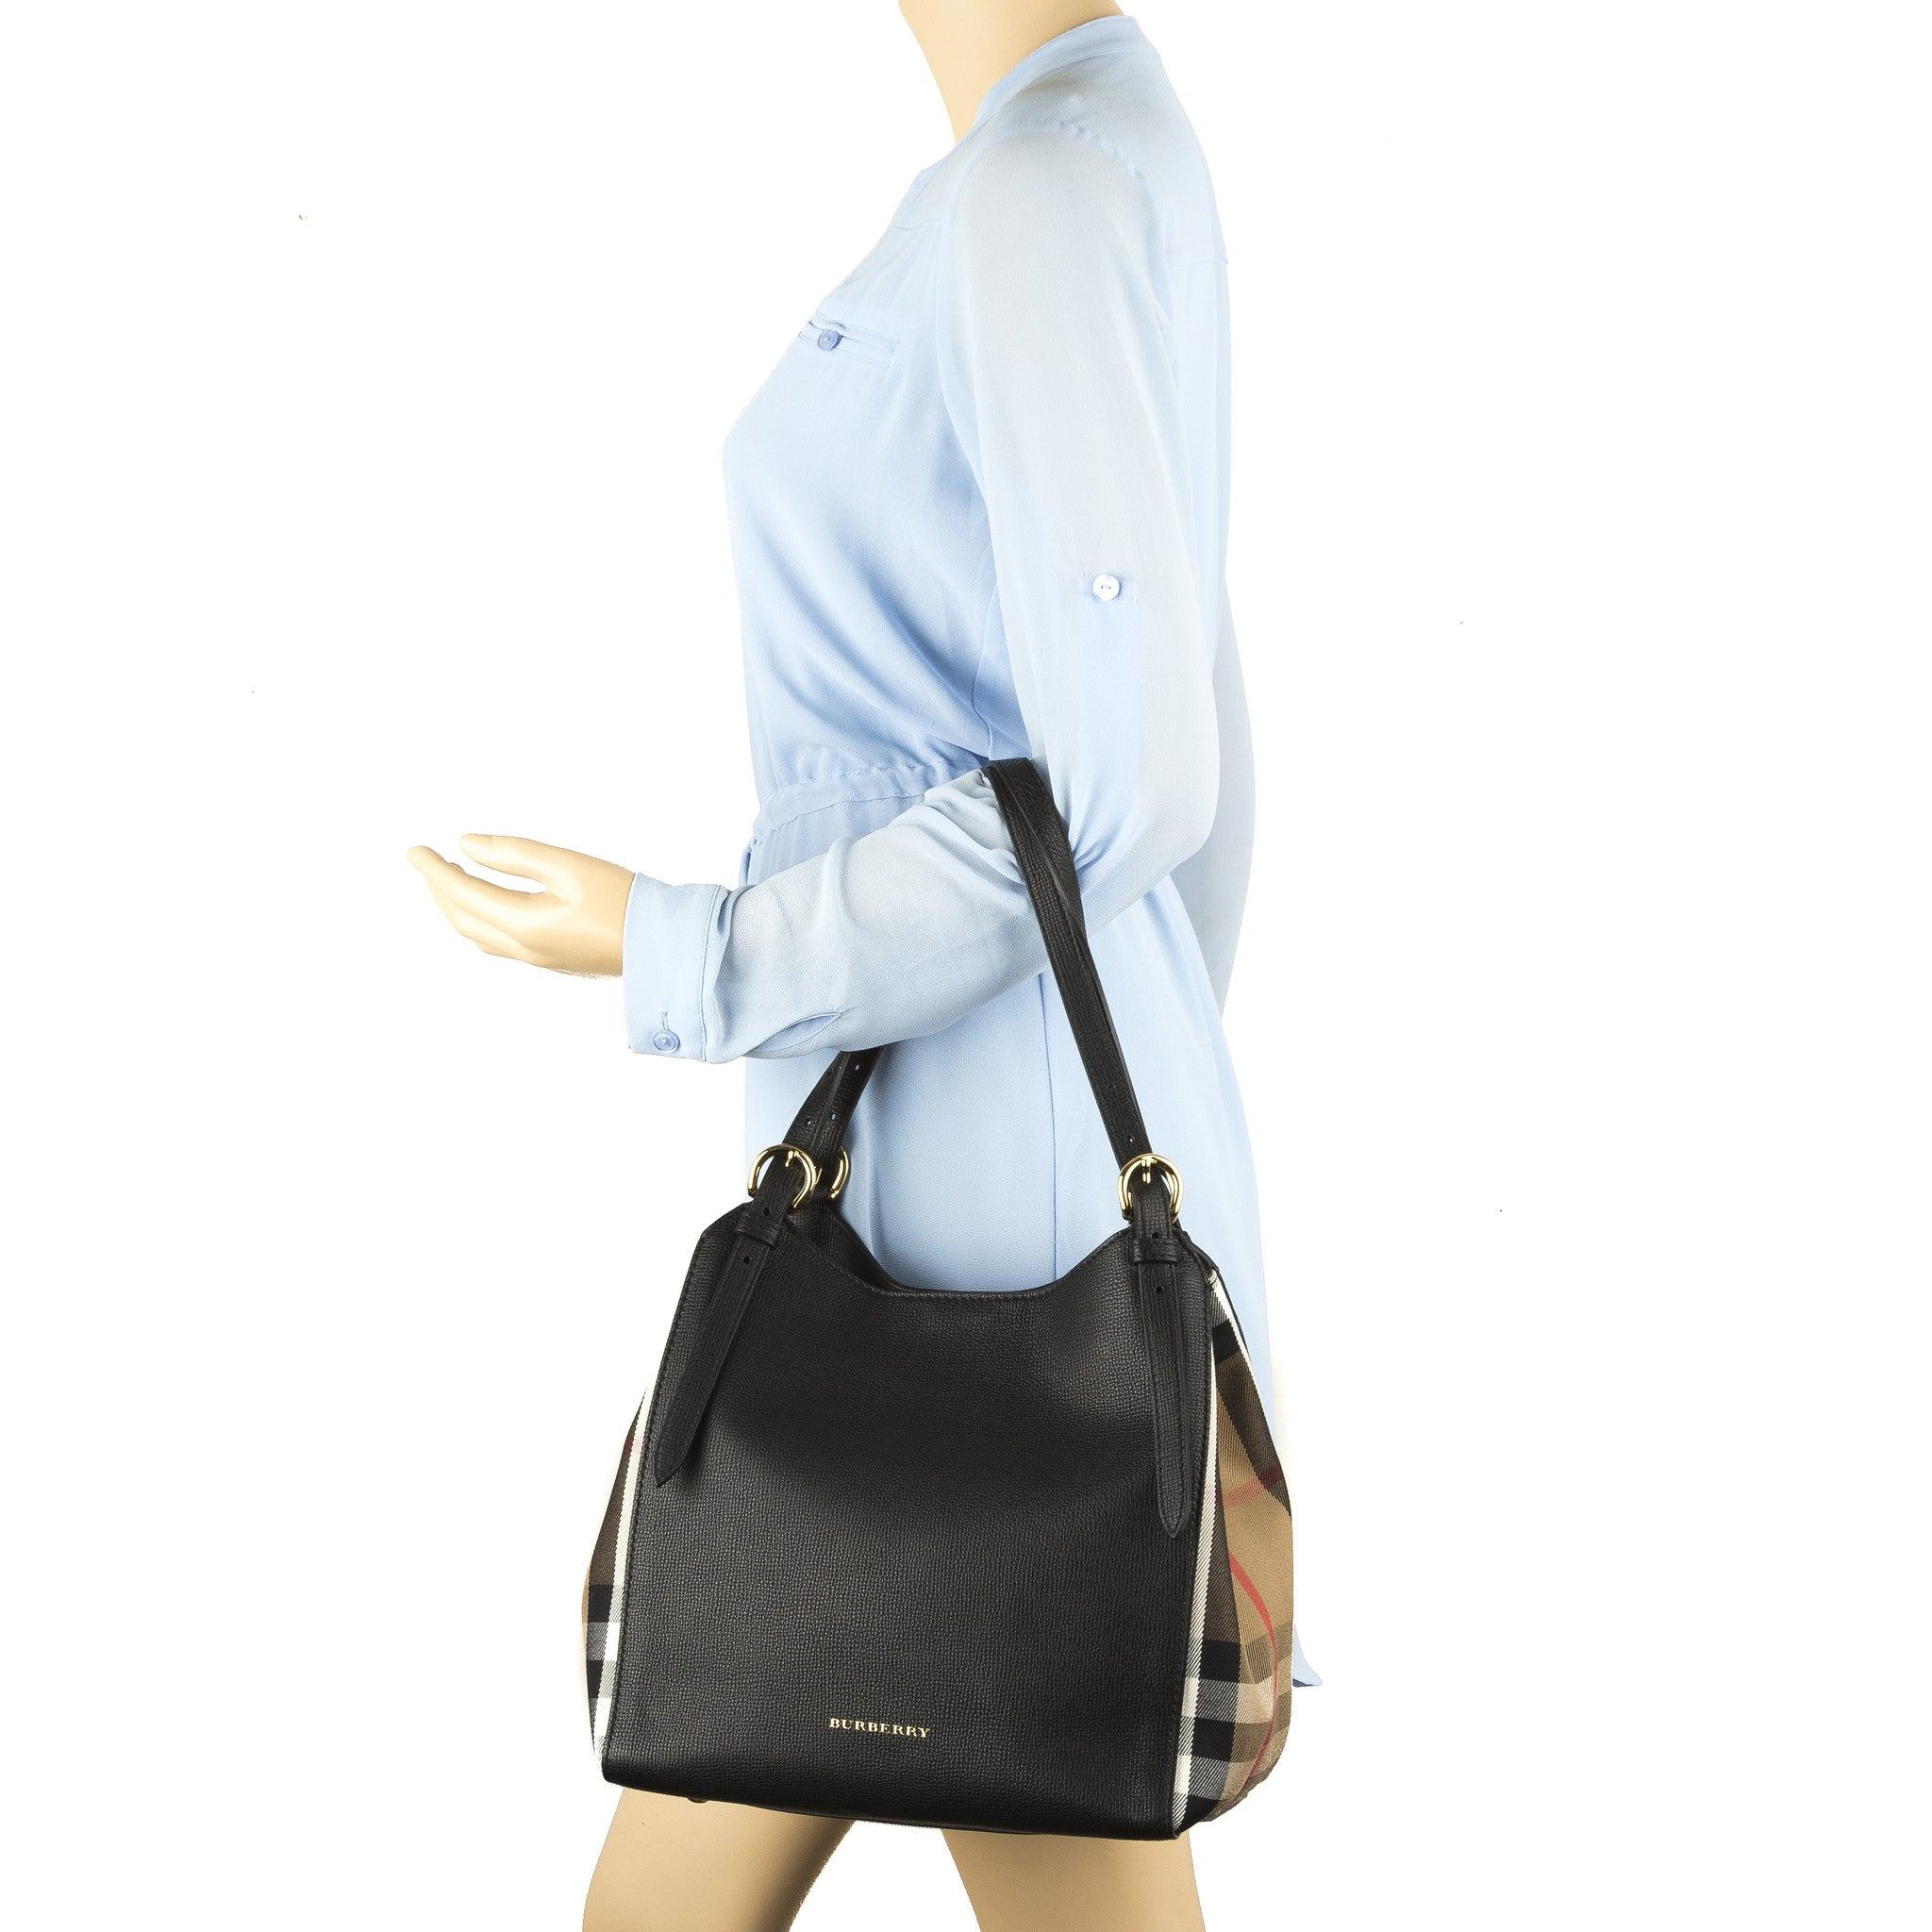 4c35389be572 ... Burberry Black Leather and House Check Small Canter Tote Bag (New with  Tags). +  +  +  +  +  +  +  +  +  +. PrevNext